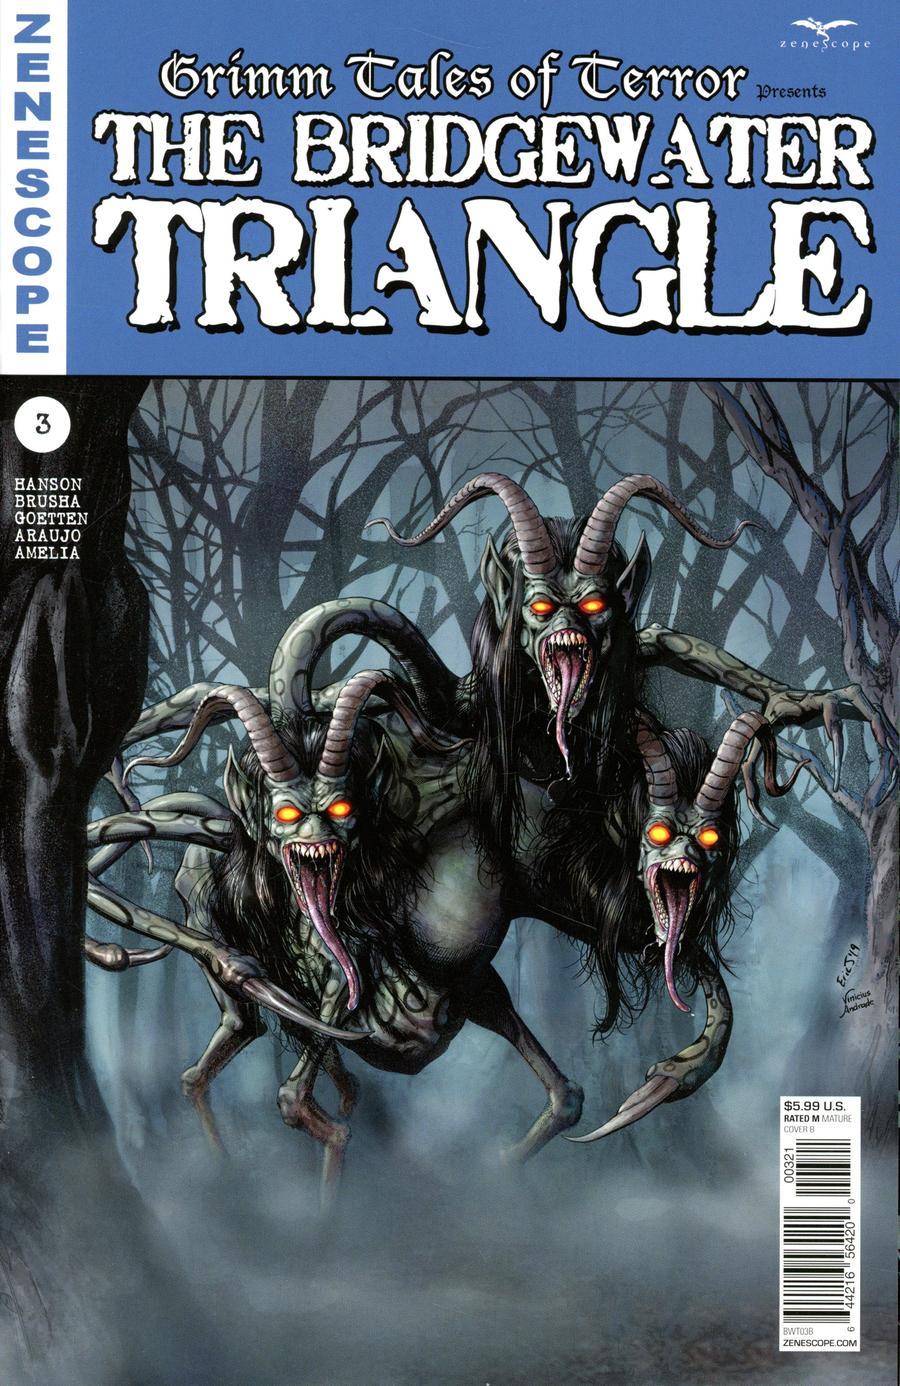 Grimm Tales Of Terror Presents Bridgewater Triangle #3 Cover B Eric J